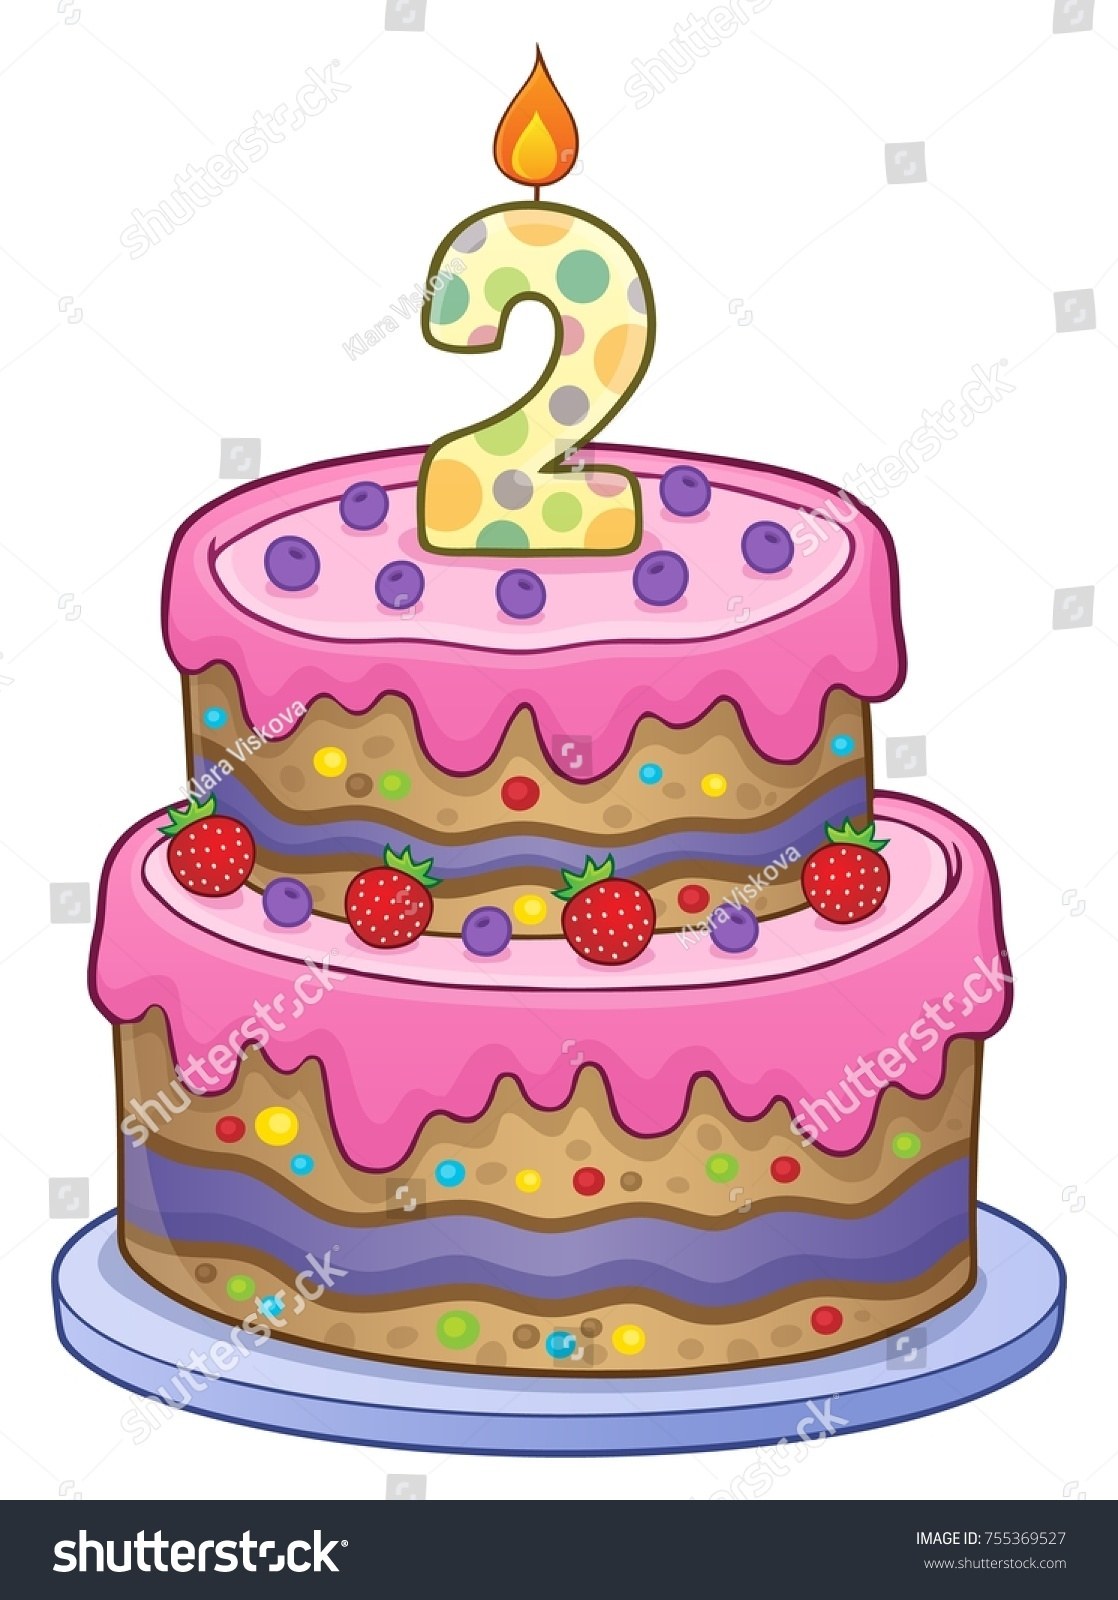 Birthday Cake Image 2 Years Old Stock Vector Royalty Free